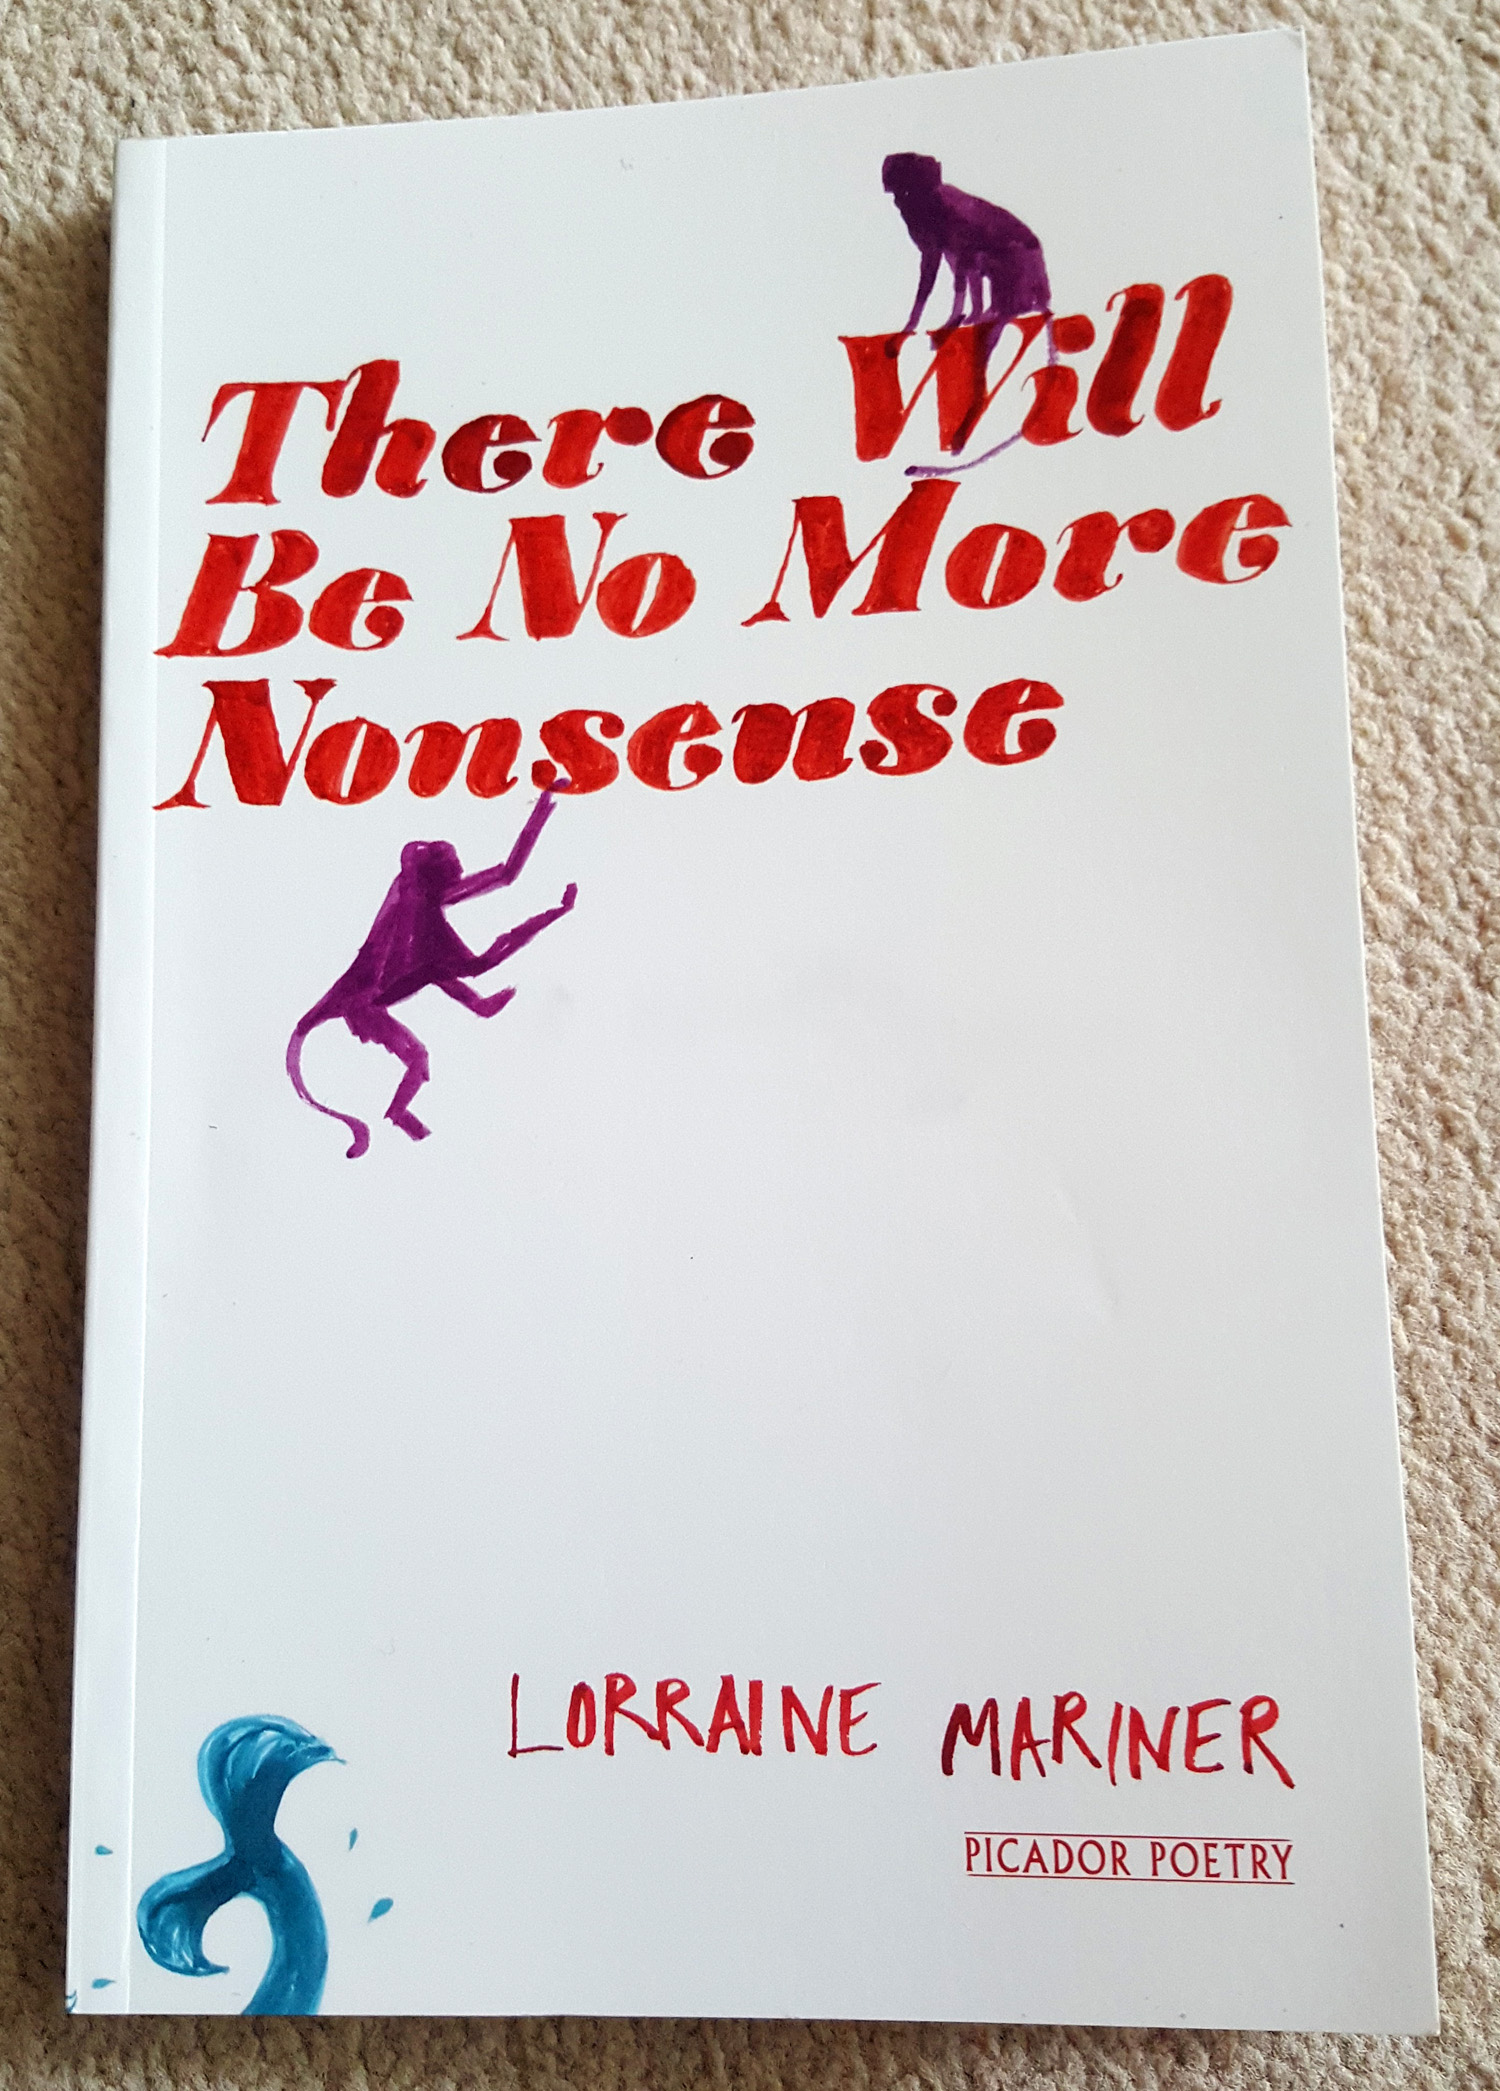 lorraine mariner - there will be no more nonsense